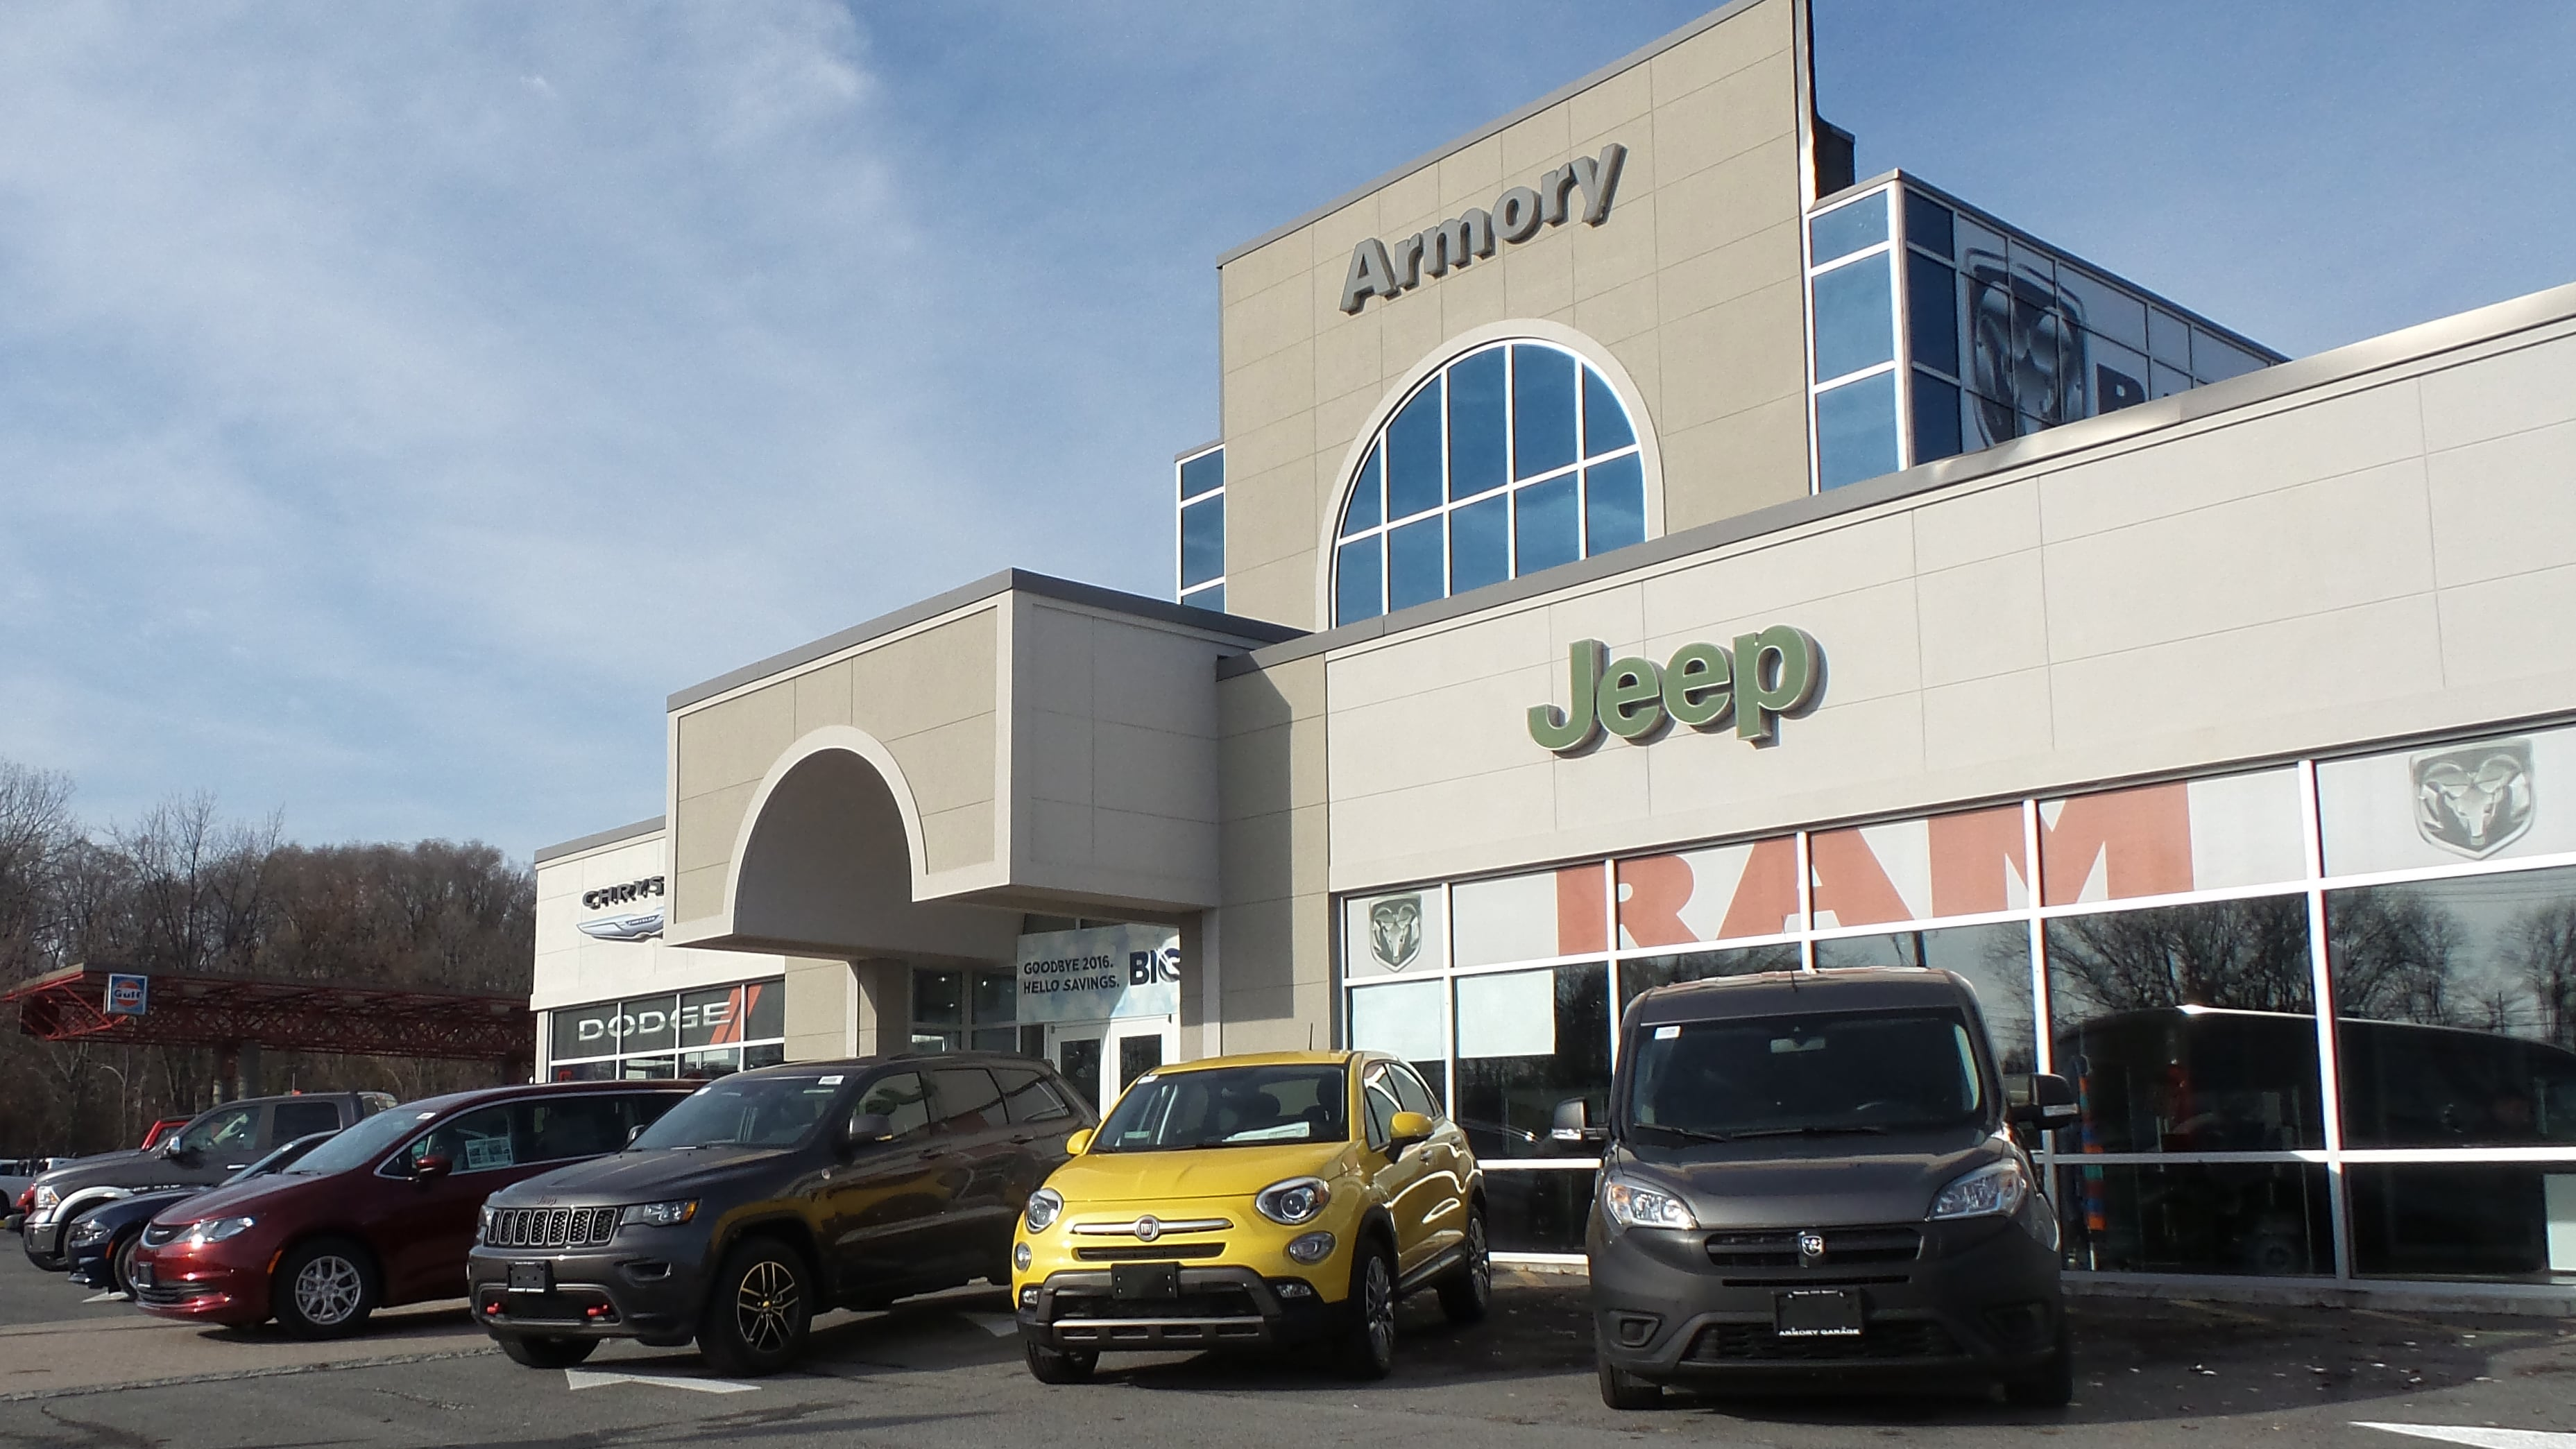 About Armory Garage   Proudly Offering New And Used Chrysler, Dodge, Jeep,  RAM And FIAT Vehicles Near Albany, Troy, Clifton Park, Latham, Schenectady,  NY